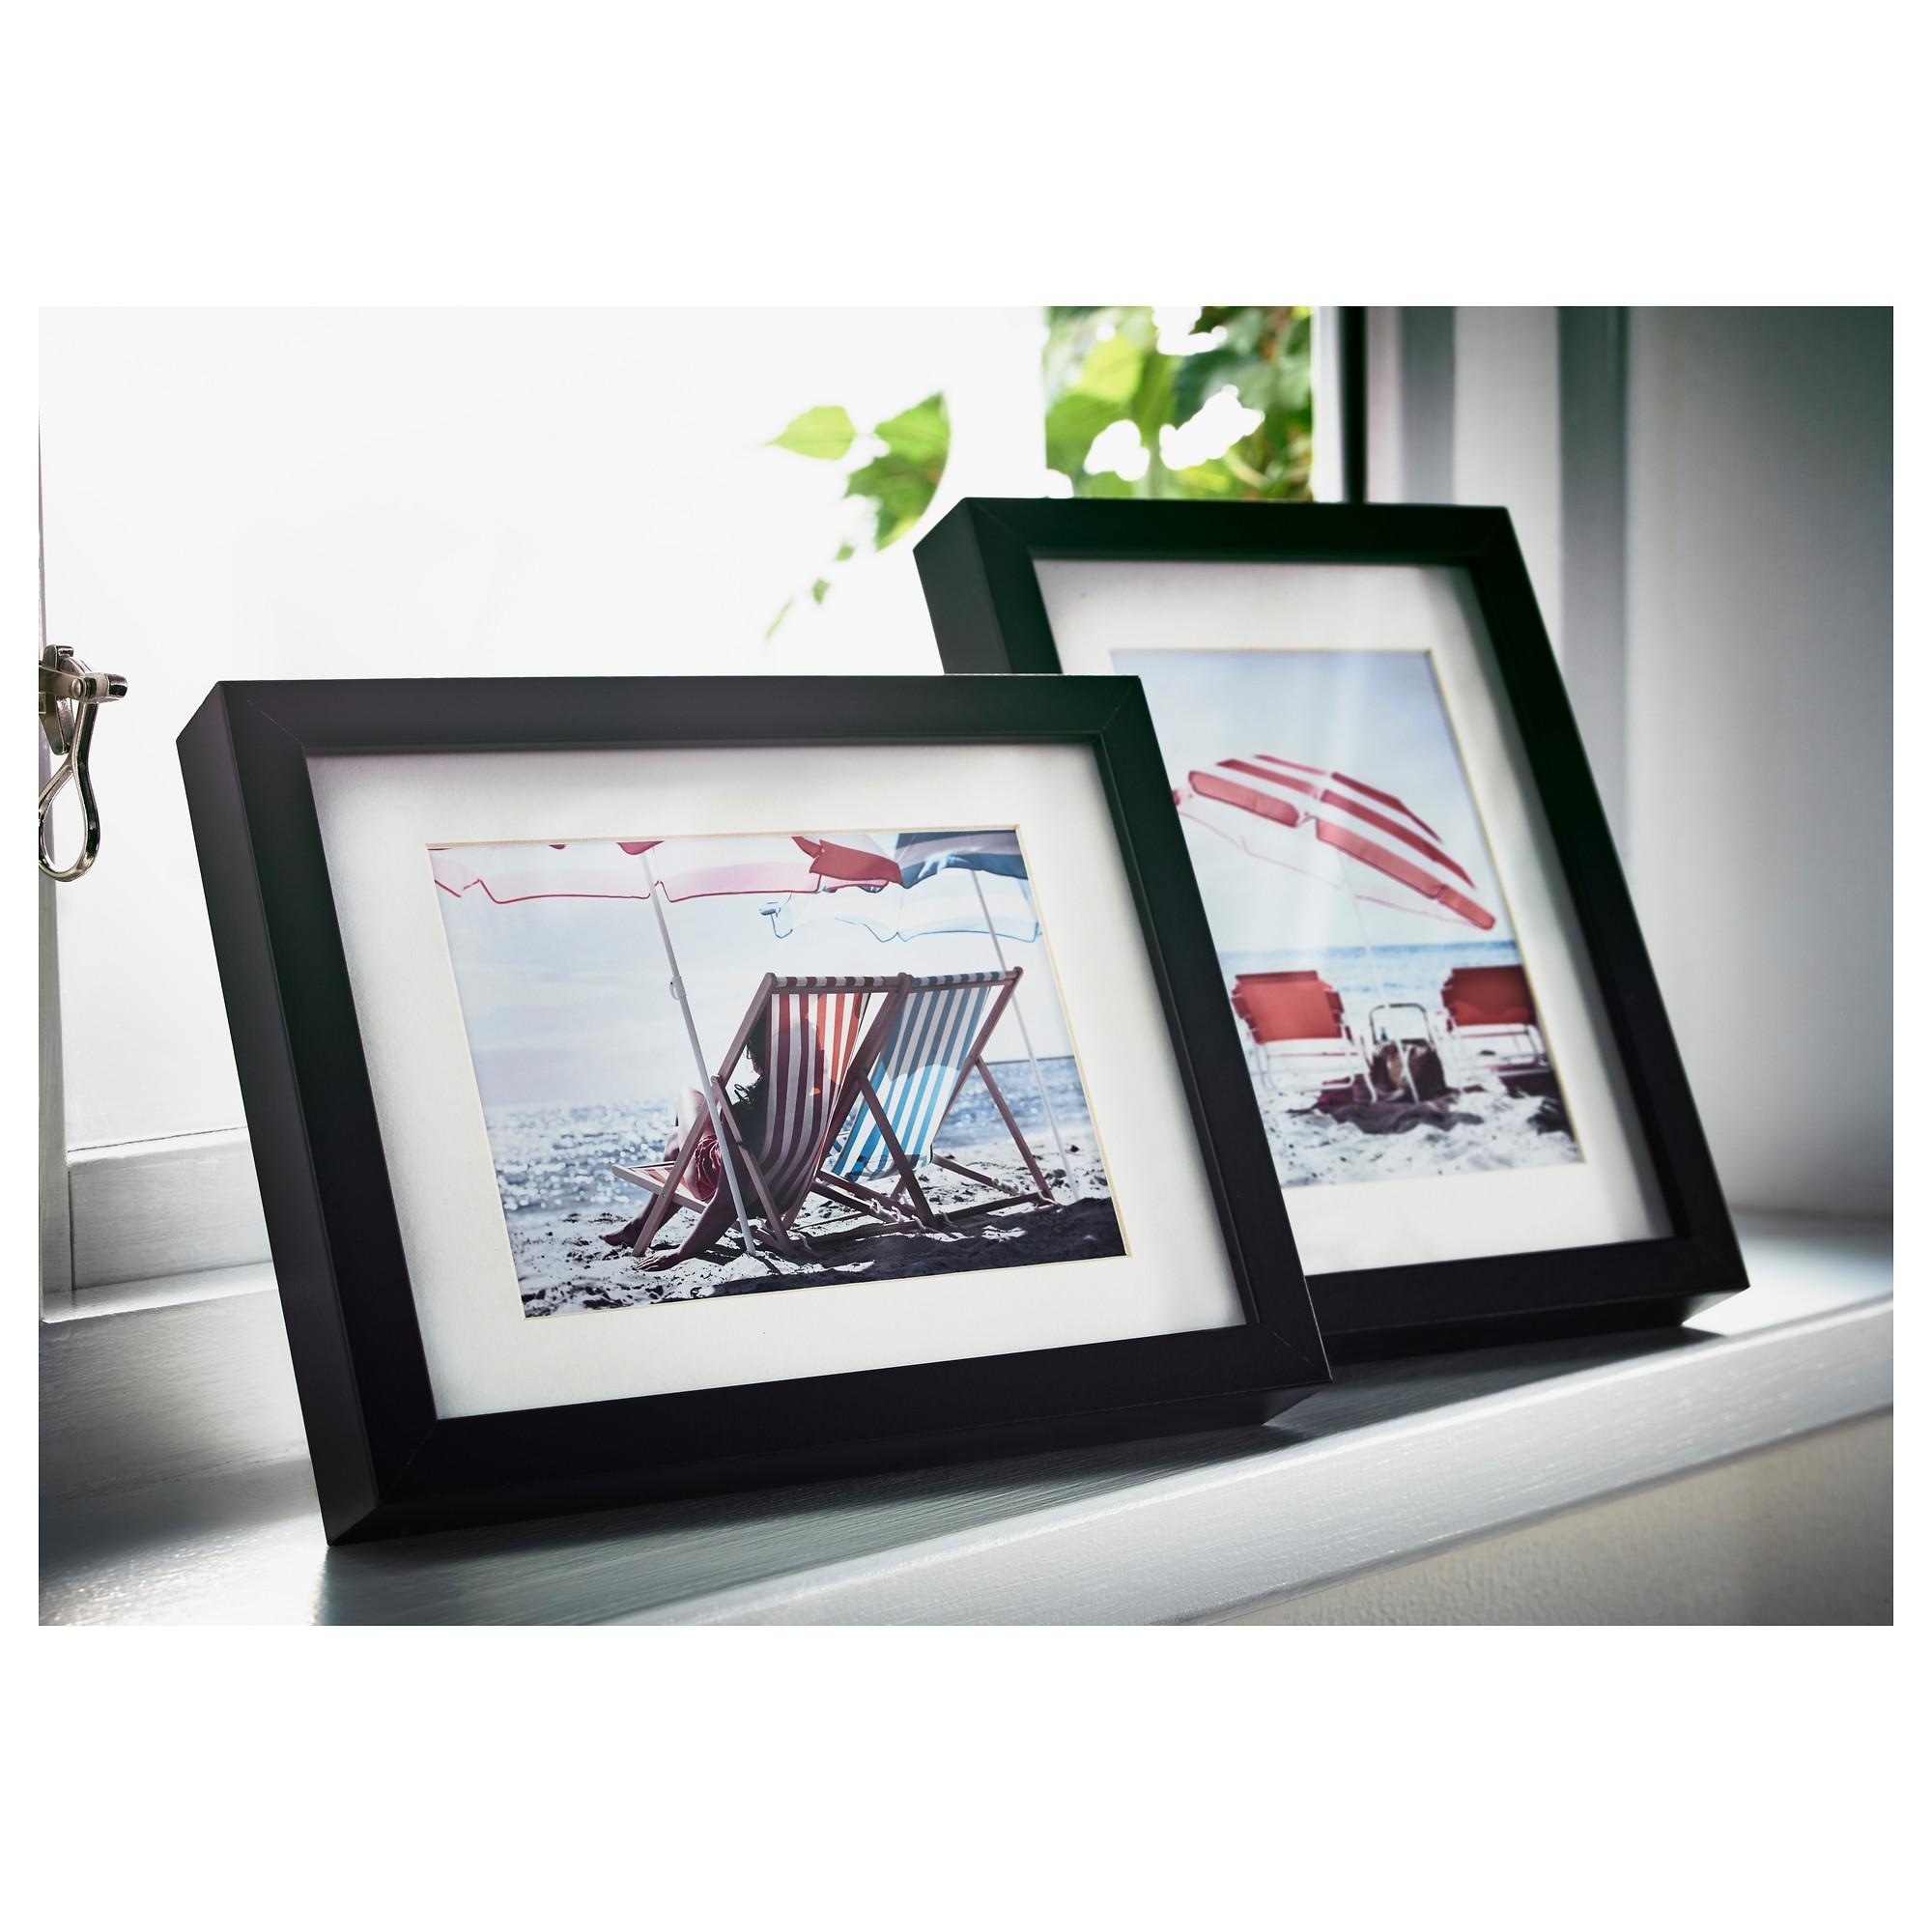 Picture Frames & Wall Art – Ikea Pertaining To Wall Art Frames (Image 15 of 20)